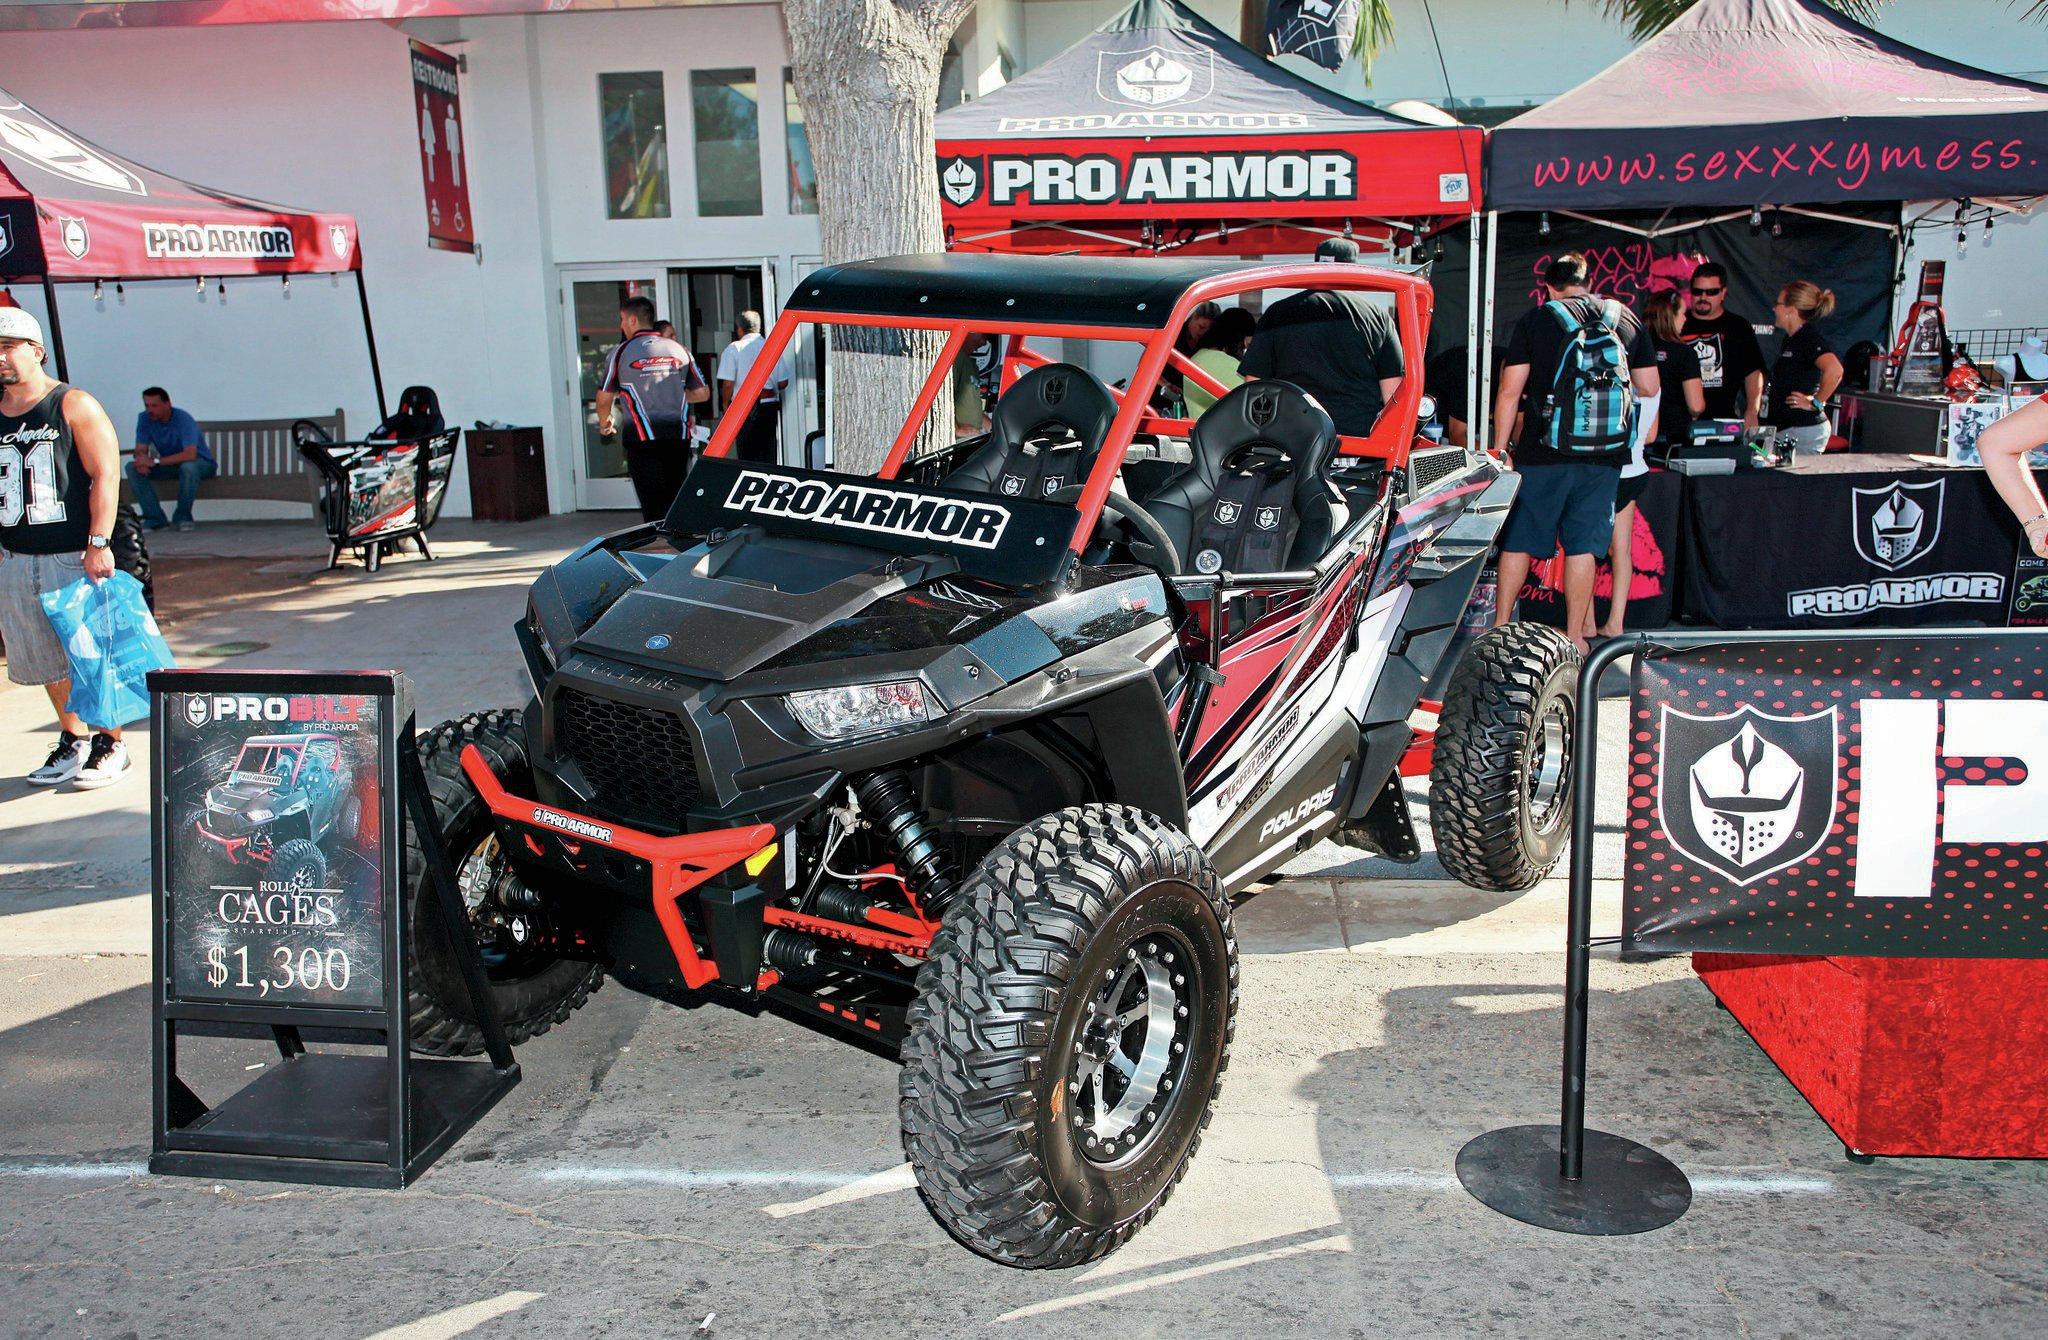 Pro Armor takes good UTVs and makes them better with safety items, 'cages, and bumpers. Their new ProBilt 'cages aim to keep the occupants safe at any speed.